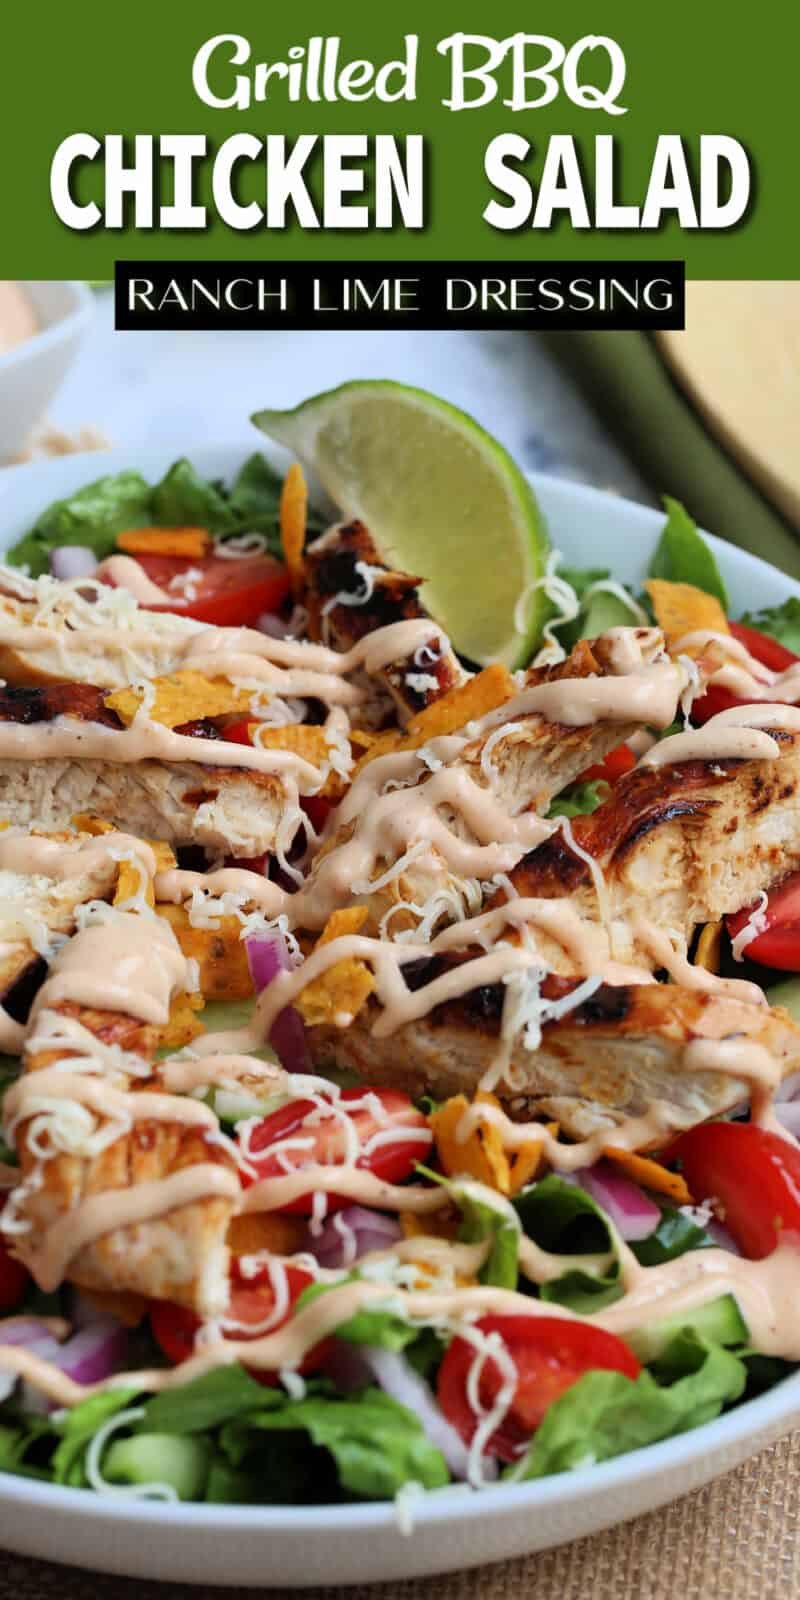 bbq chicken salad with dressing drizzled on the salad with text overlay